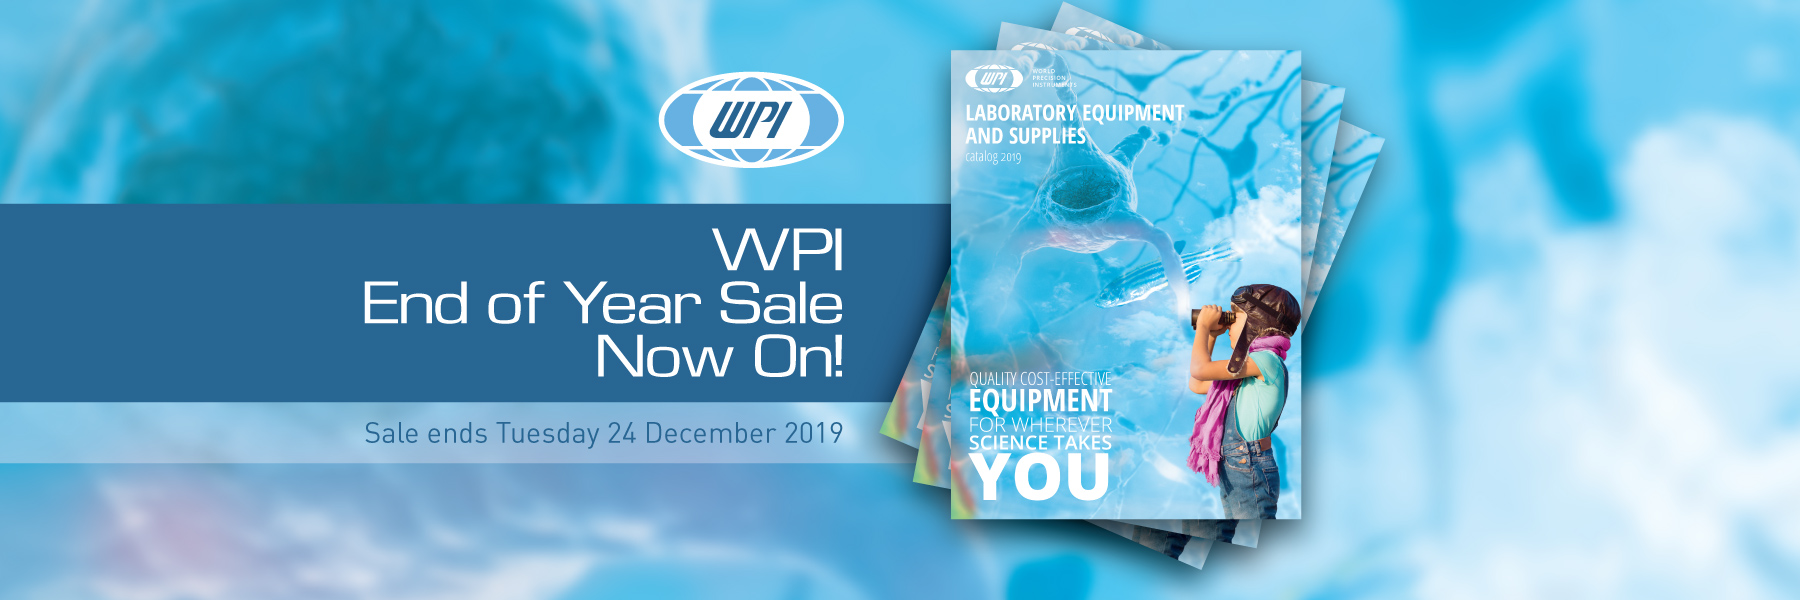 WPI End of Year Sale Now On